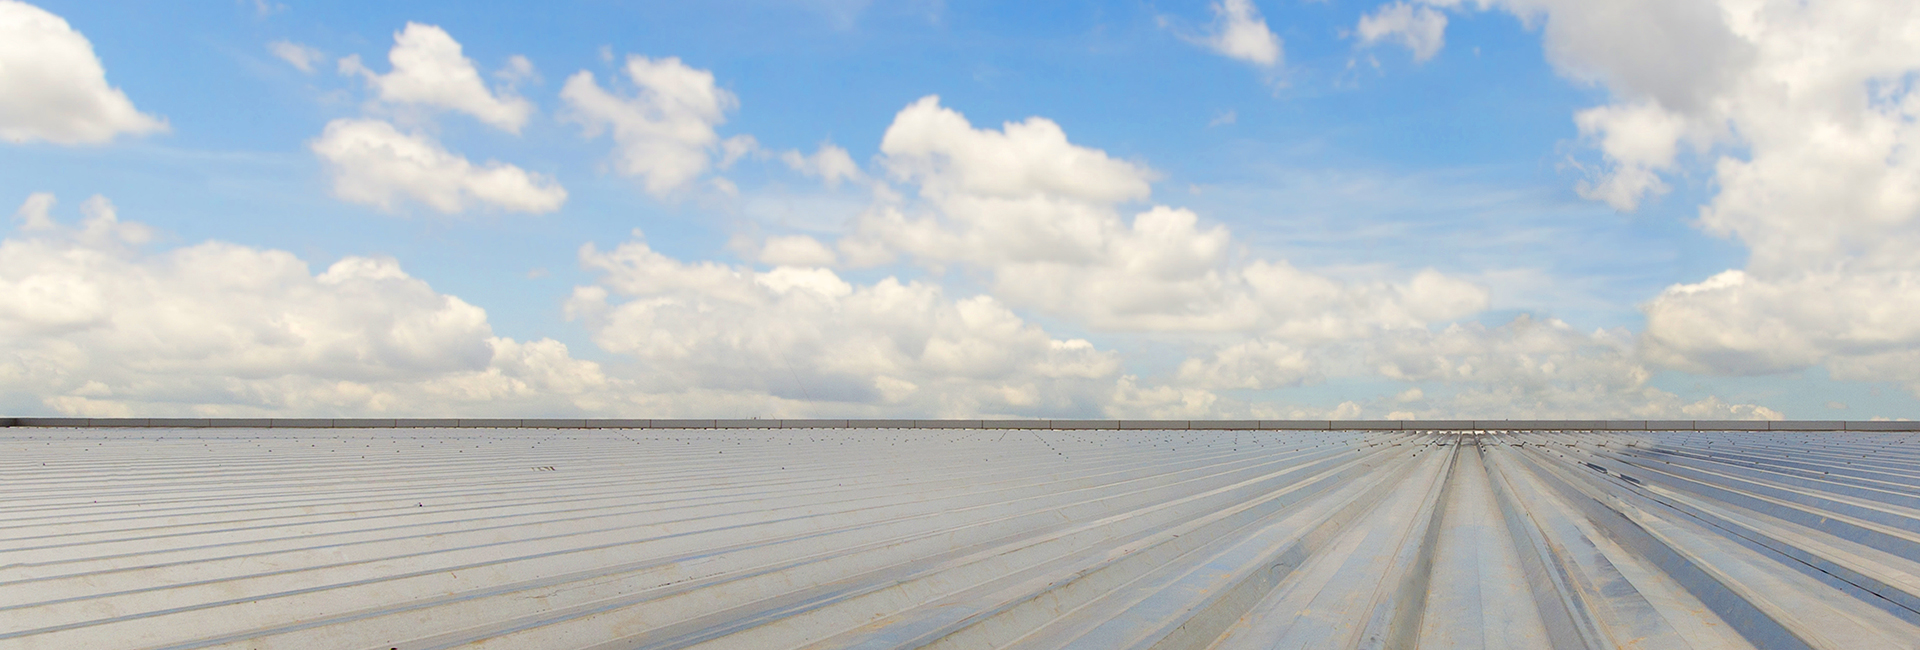 Over 7 Million Square Feet of Commercial Roofing Installed!